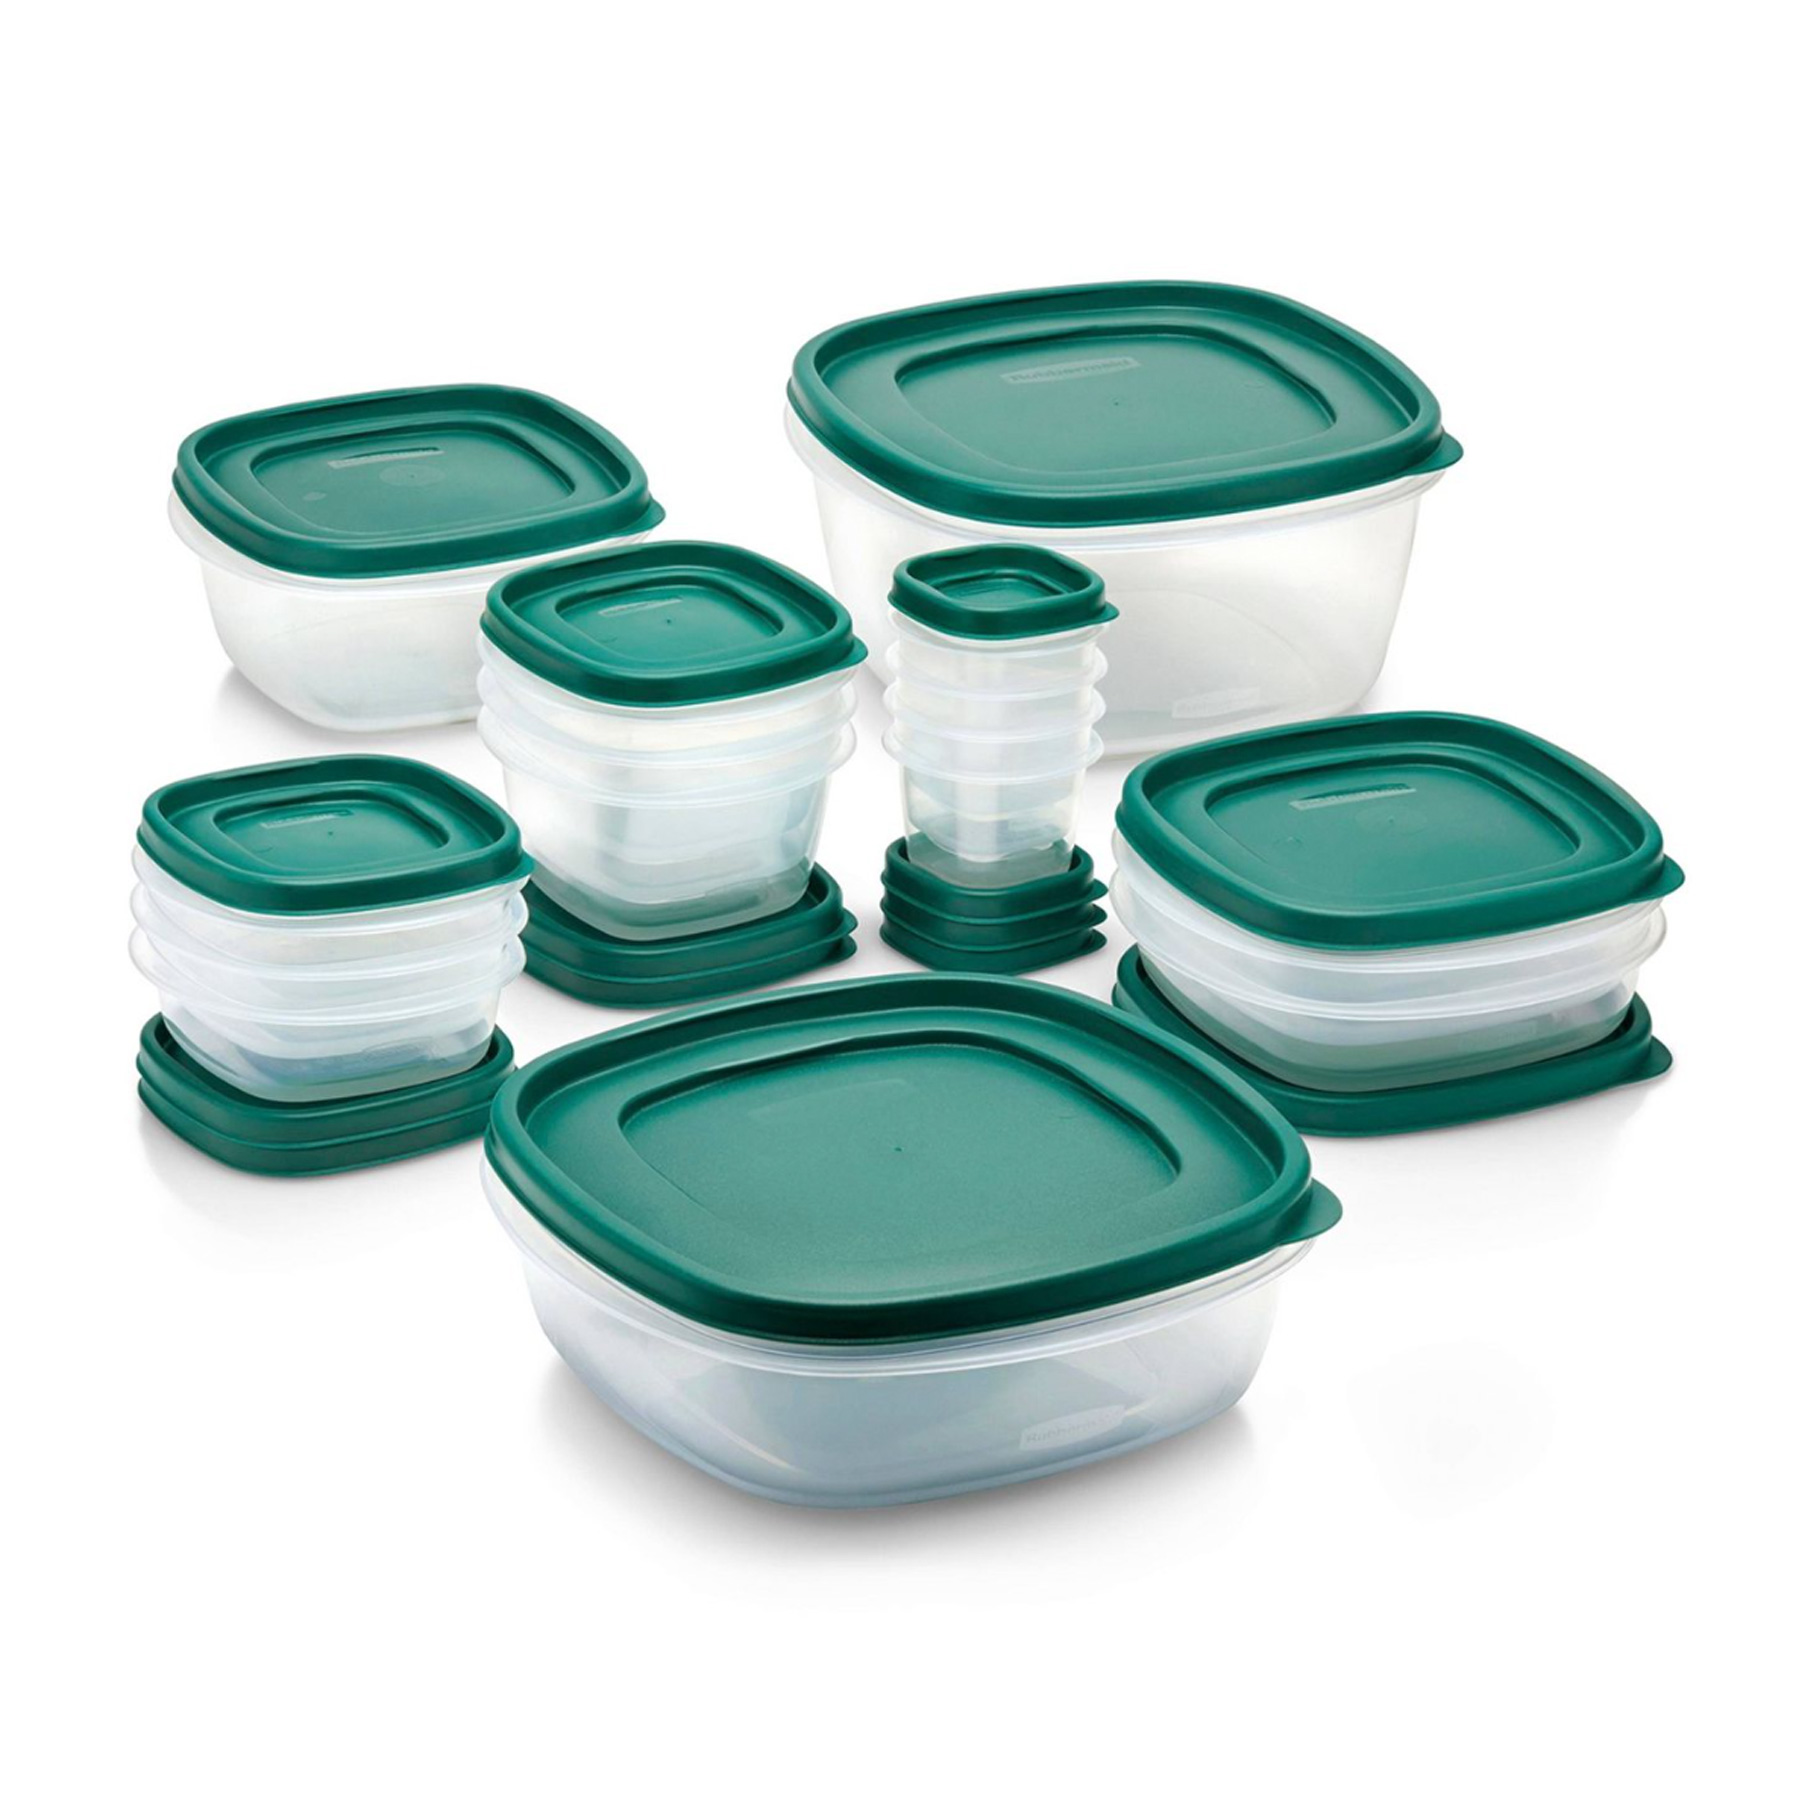 7 99 Reg 42 Rubbermaid 30 Pc Food Storage Container Set Deal Hunting Babe